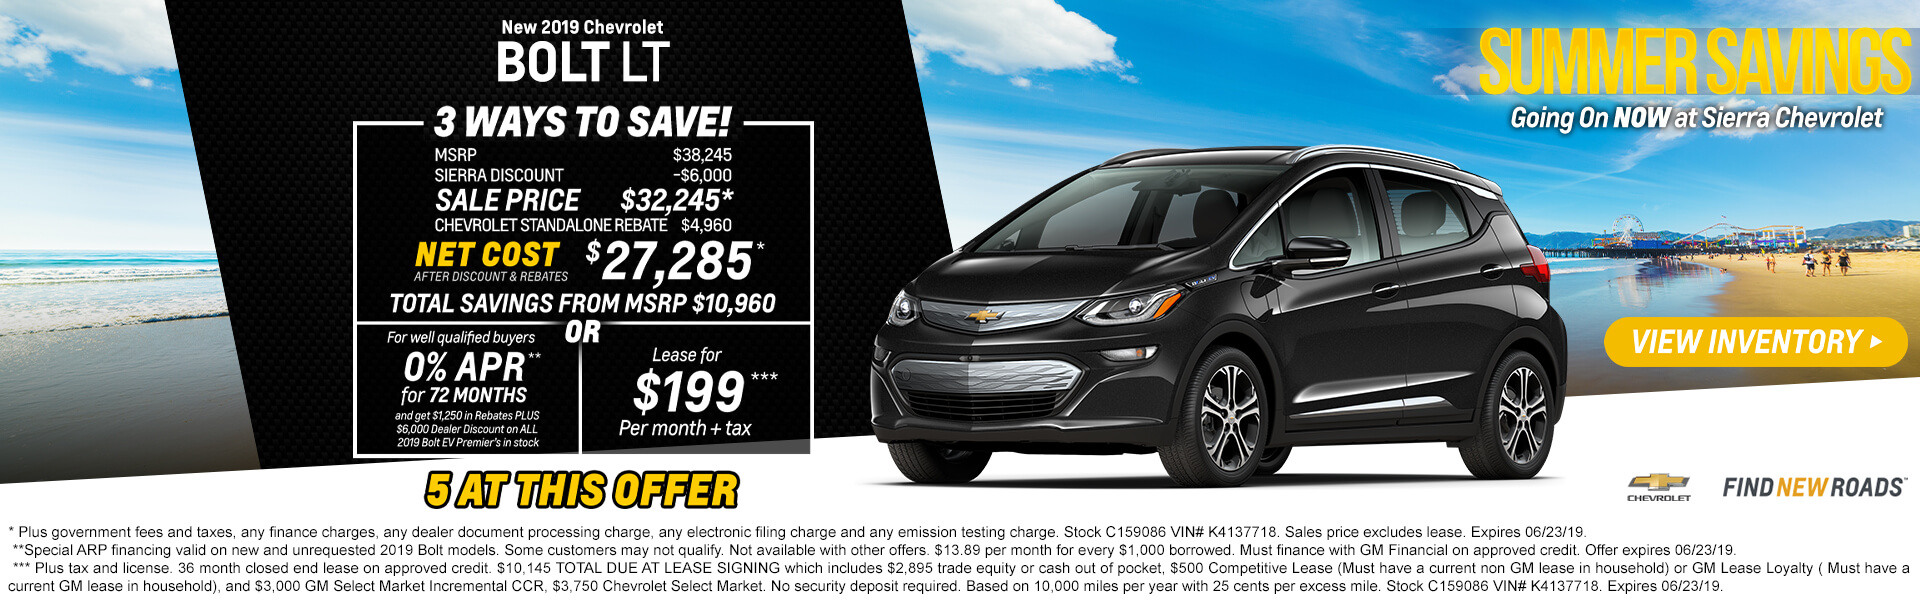 """2019 Chevrolet Bolt LT  MSRP $38,245 Sierra Discount -$6,000 SALE PRICE $32,245* Chevrolet Standalone Rebate $4,960  Net Cost After Discount & Rebates $27,285*  Total Savings from MSPR $ 10,960  5 AT THIS OFFER     """"OR""""    For well qualified buyers   Get 0% APR** Financing for 72 months   and get $1,250 in Rebates PLUS $6,000 Dealer Discount on ALL 2019 Bolt EV Premier's in stock     """"OR""""   Lease  Lease for $199***   Per month + tax           * Plus government fees and taxes, any finance charges, any dealer document processing charge, any electronic filing charge and any emission testing charge. Stock C159086 VIN# K4137718. Sales price excludes lease. Expires 06/23/19.   **Special ARP financing valid on new and unrequested 2019 Bolt models. Some customers may not qualify. Not available with other offers. $13.89 per month for every $1,000 borrowed. Must finance with GM Financial on approved credit. Offer expires 06/23/19.      *** Plus tax and license. 36 month closed end lease on approved credit. $10,145 TOTAL DUE AT LEASE SIGNING which includes $2,895 trade equity or cash out of pocket, $500 Competitive Lease (Must have a current non GM lease in household) or GM Lease Loyalty ( Must have a current GM lease in household), and $3,000 GM Select Market Incremental CCR, $3,750 Chevrolet Select Market. No security deposit required. Based on 10,000 miles per year with 25 cents per excess mile. Stock C159086 VIN# K4137718. Expires 06/23/19."""